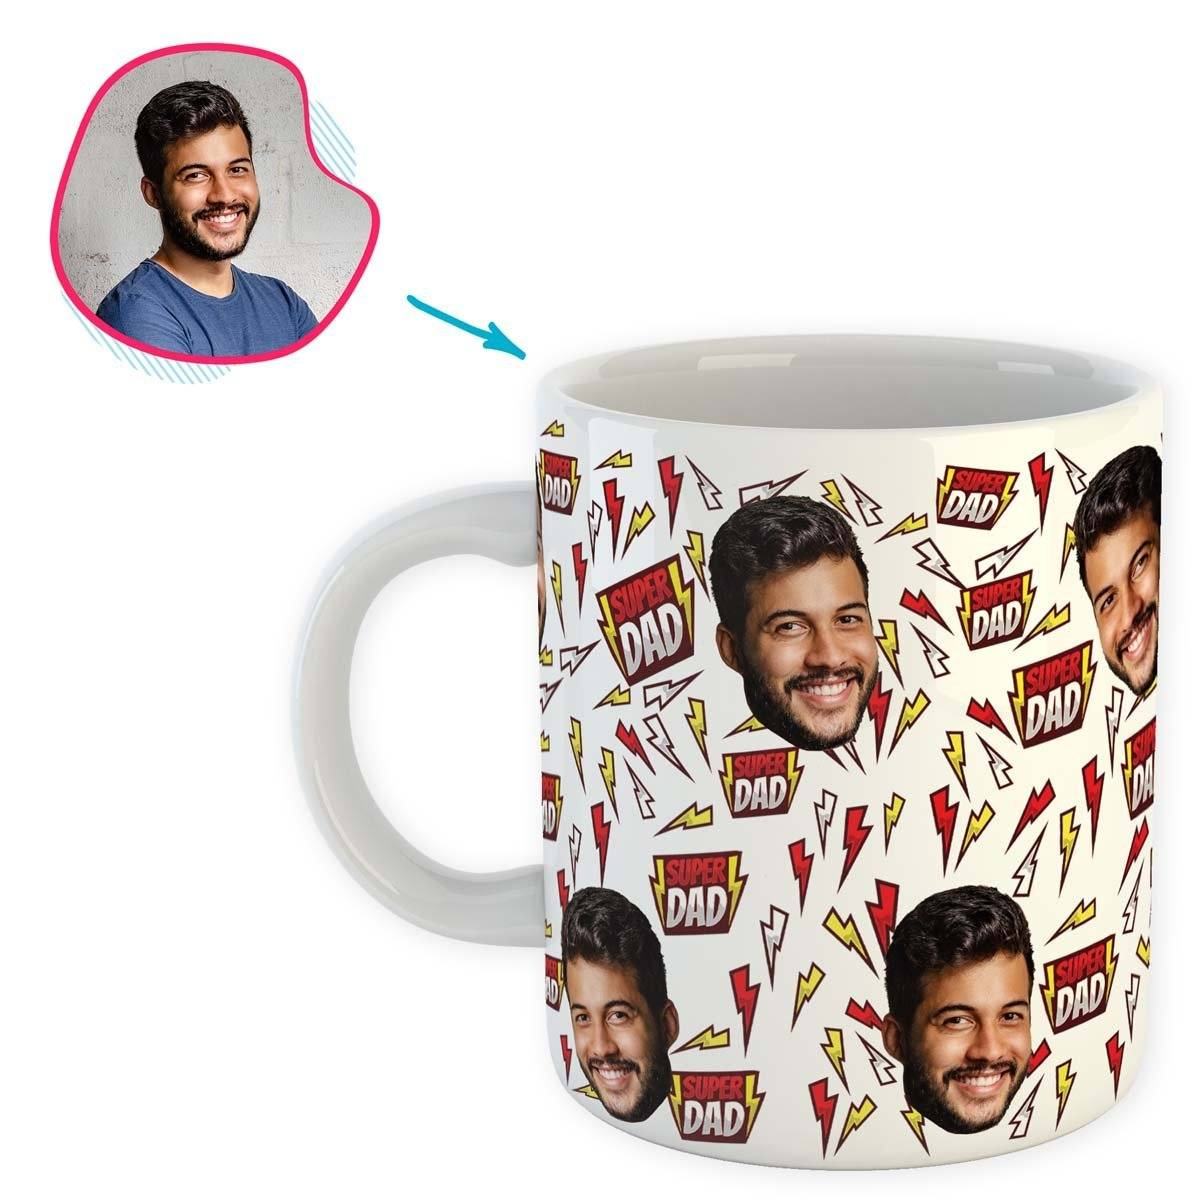 white Super Dad mug personalized with photo of face printed on it